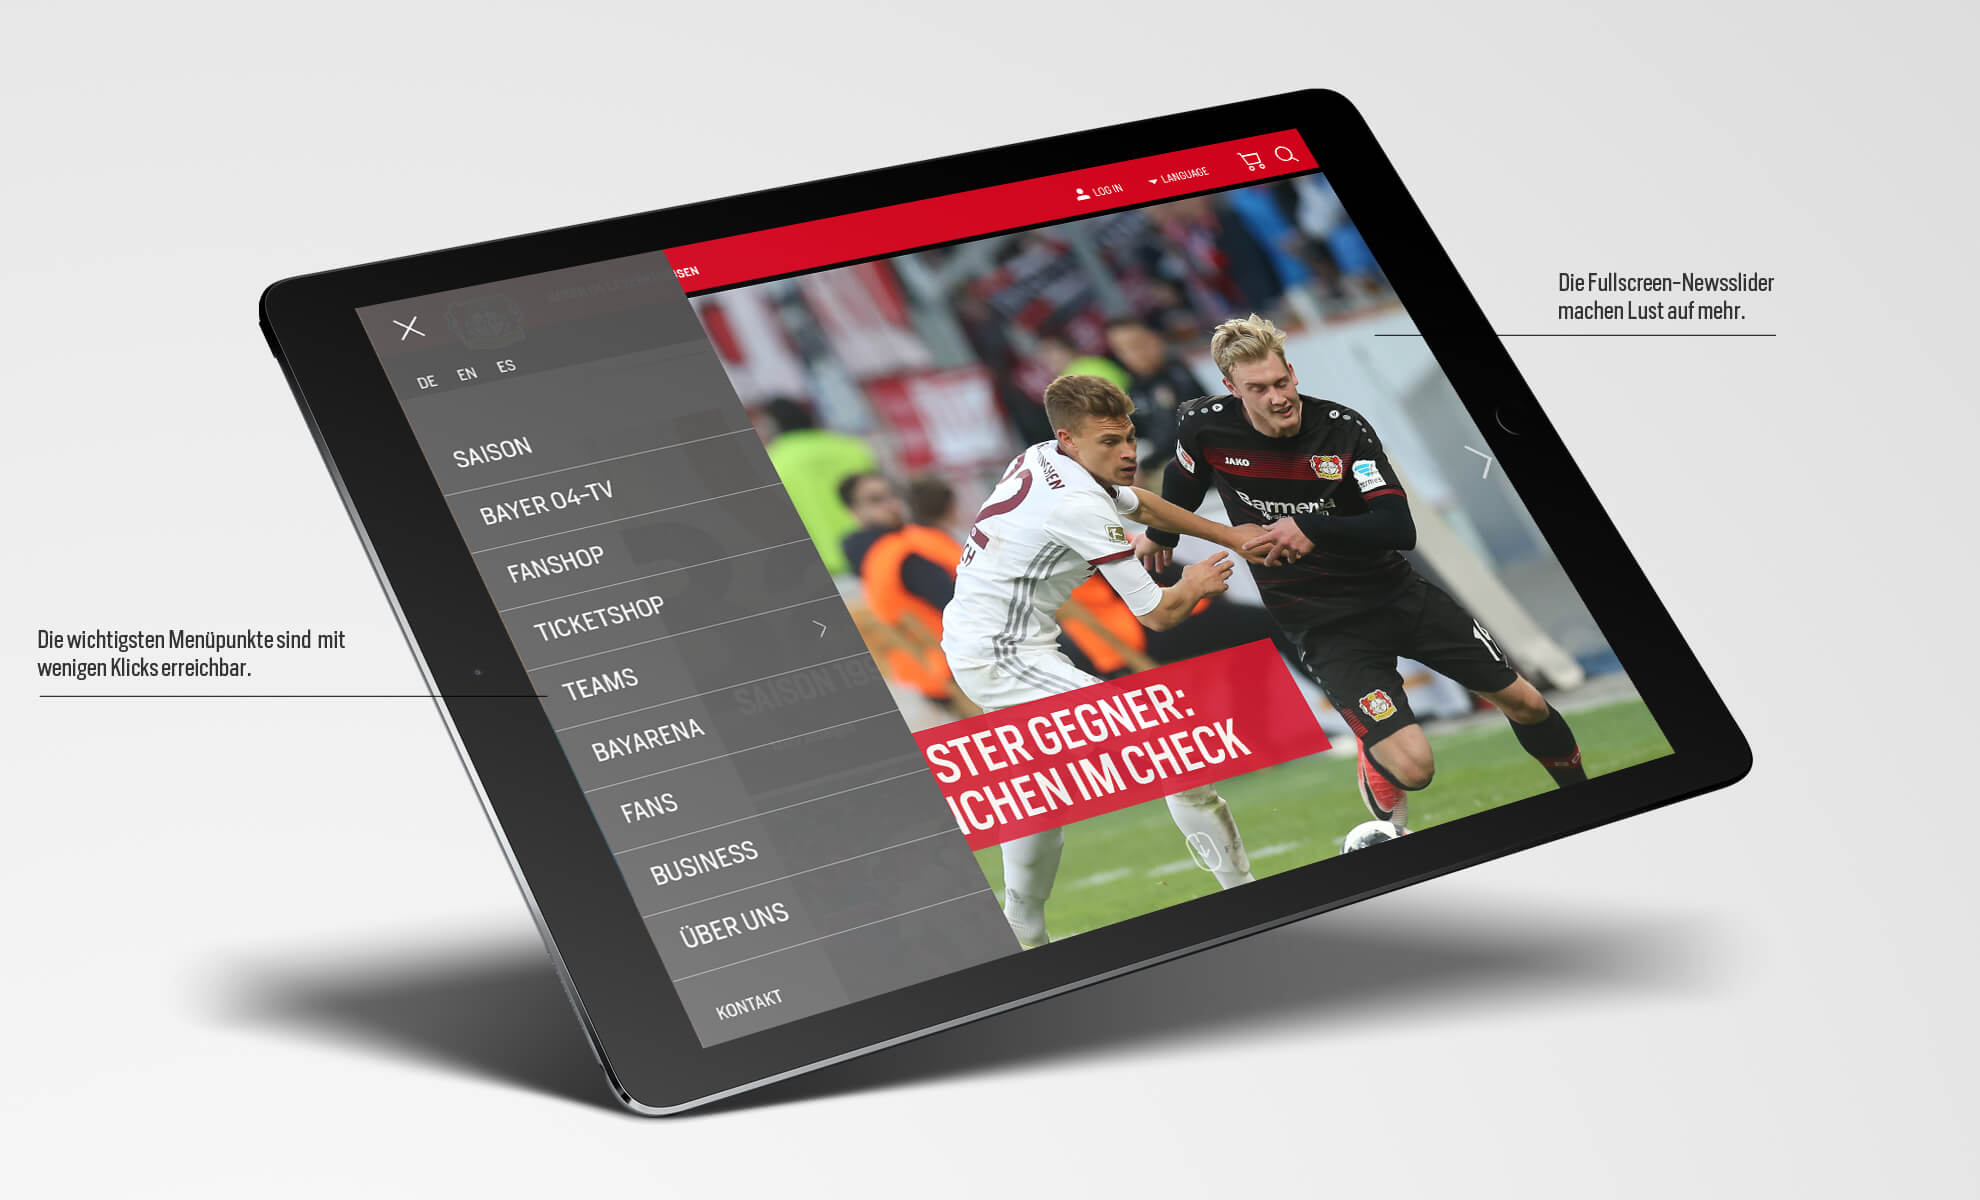 Bayer 04 Leverkusen Website, Relaunch, Redesign, Webdesign, UX, UI, ipad, Hamburgermenü